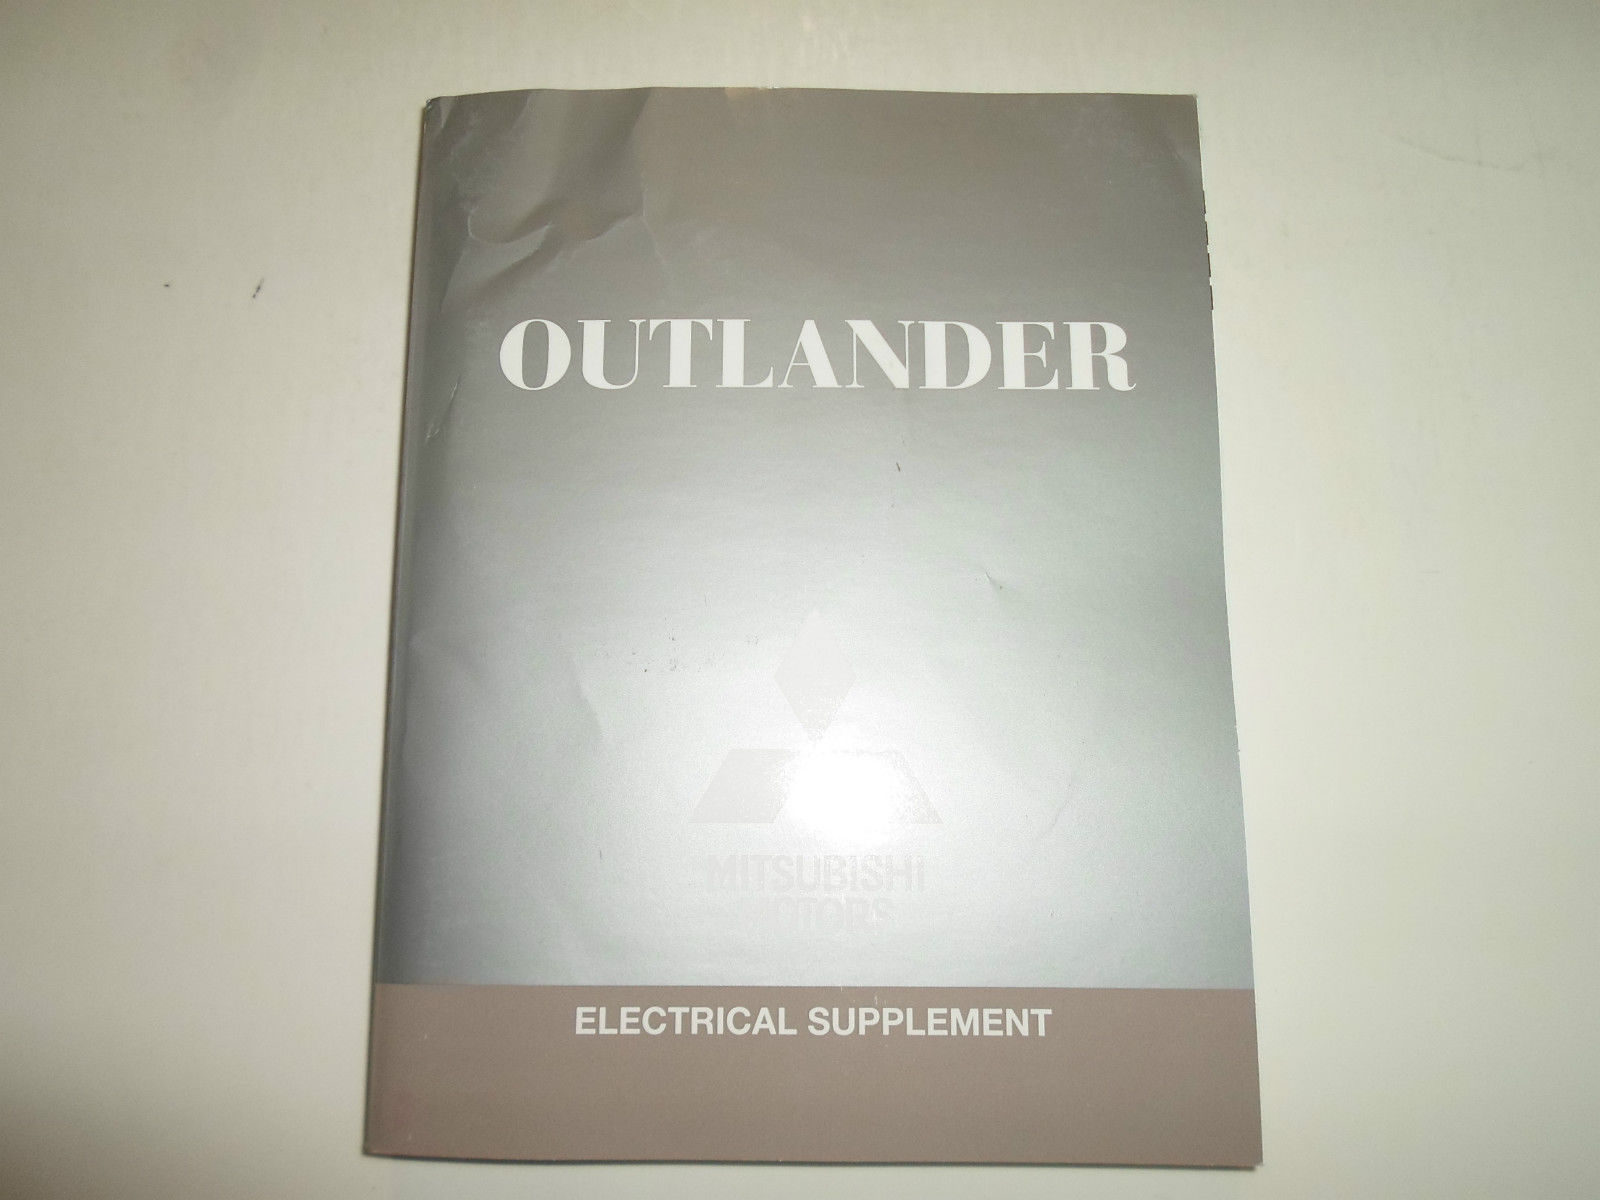 2012 MITSUBISHI Outlander Electrical Supplement Manual FACTORY OEM BOOK 12 WORN